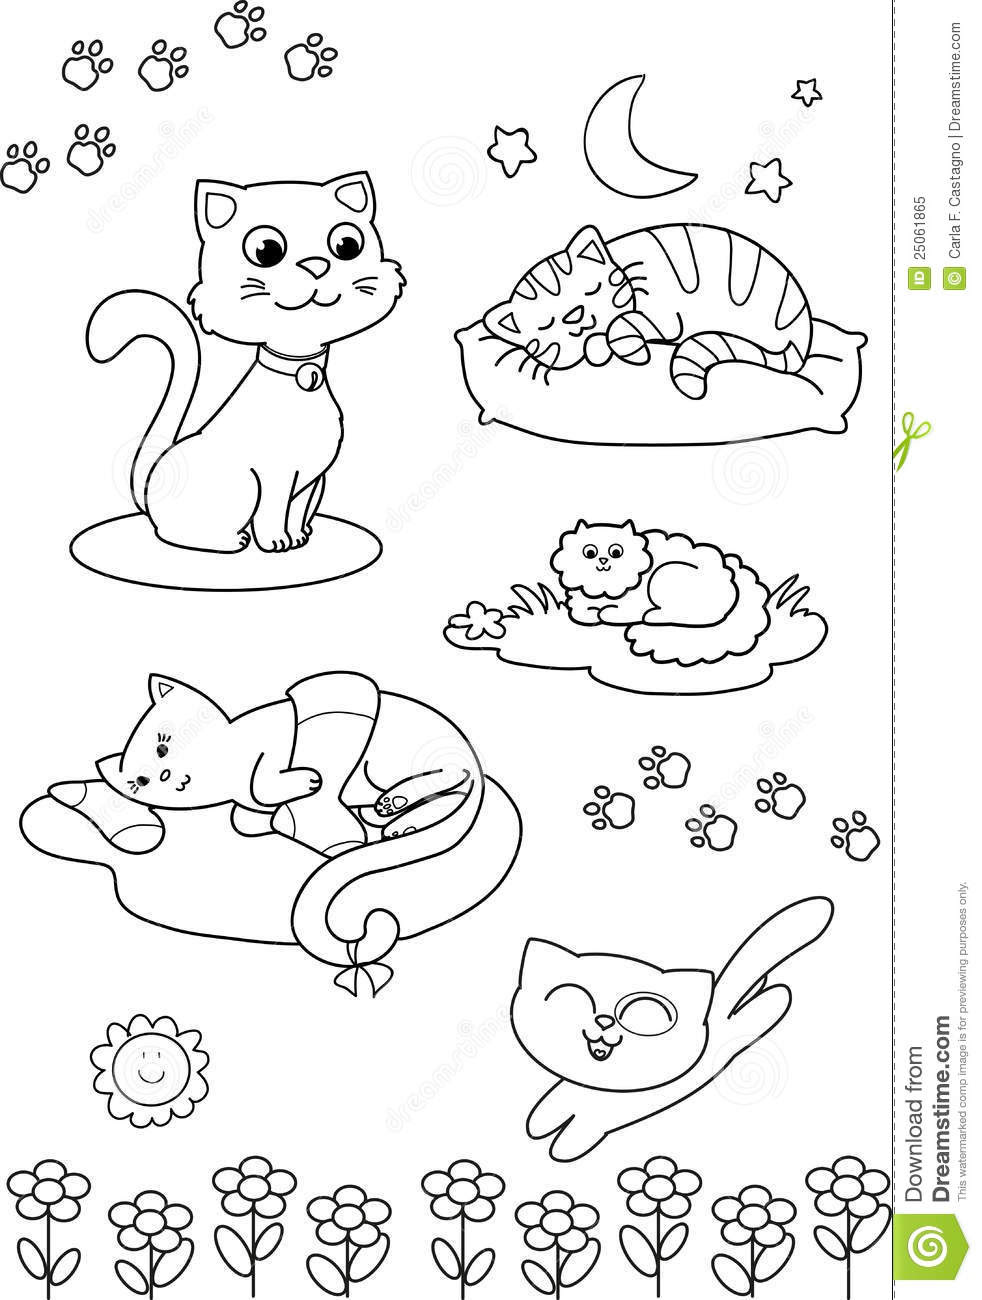 Cute Cartoon Cats: Coloring Page Royalty Free Stock Photo ...